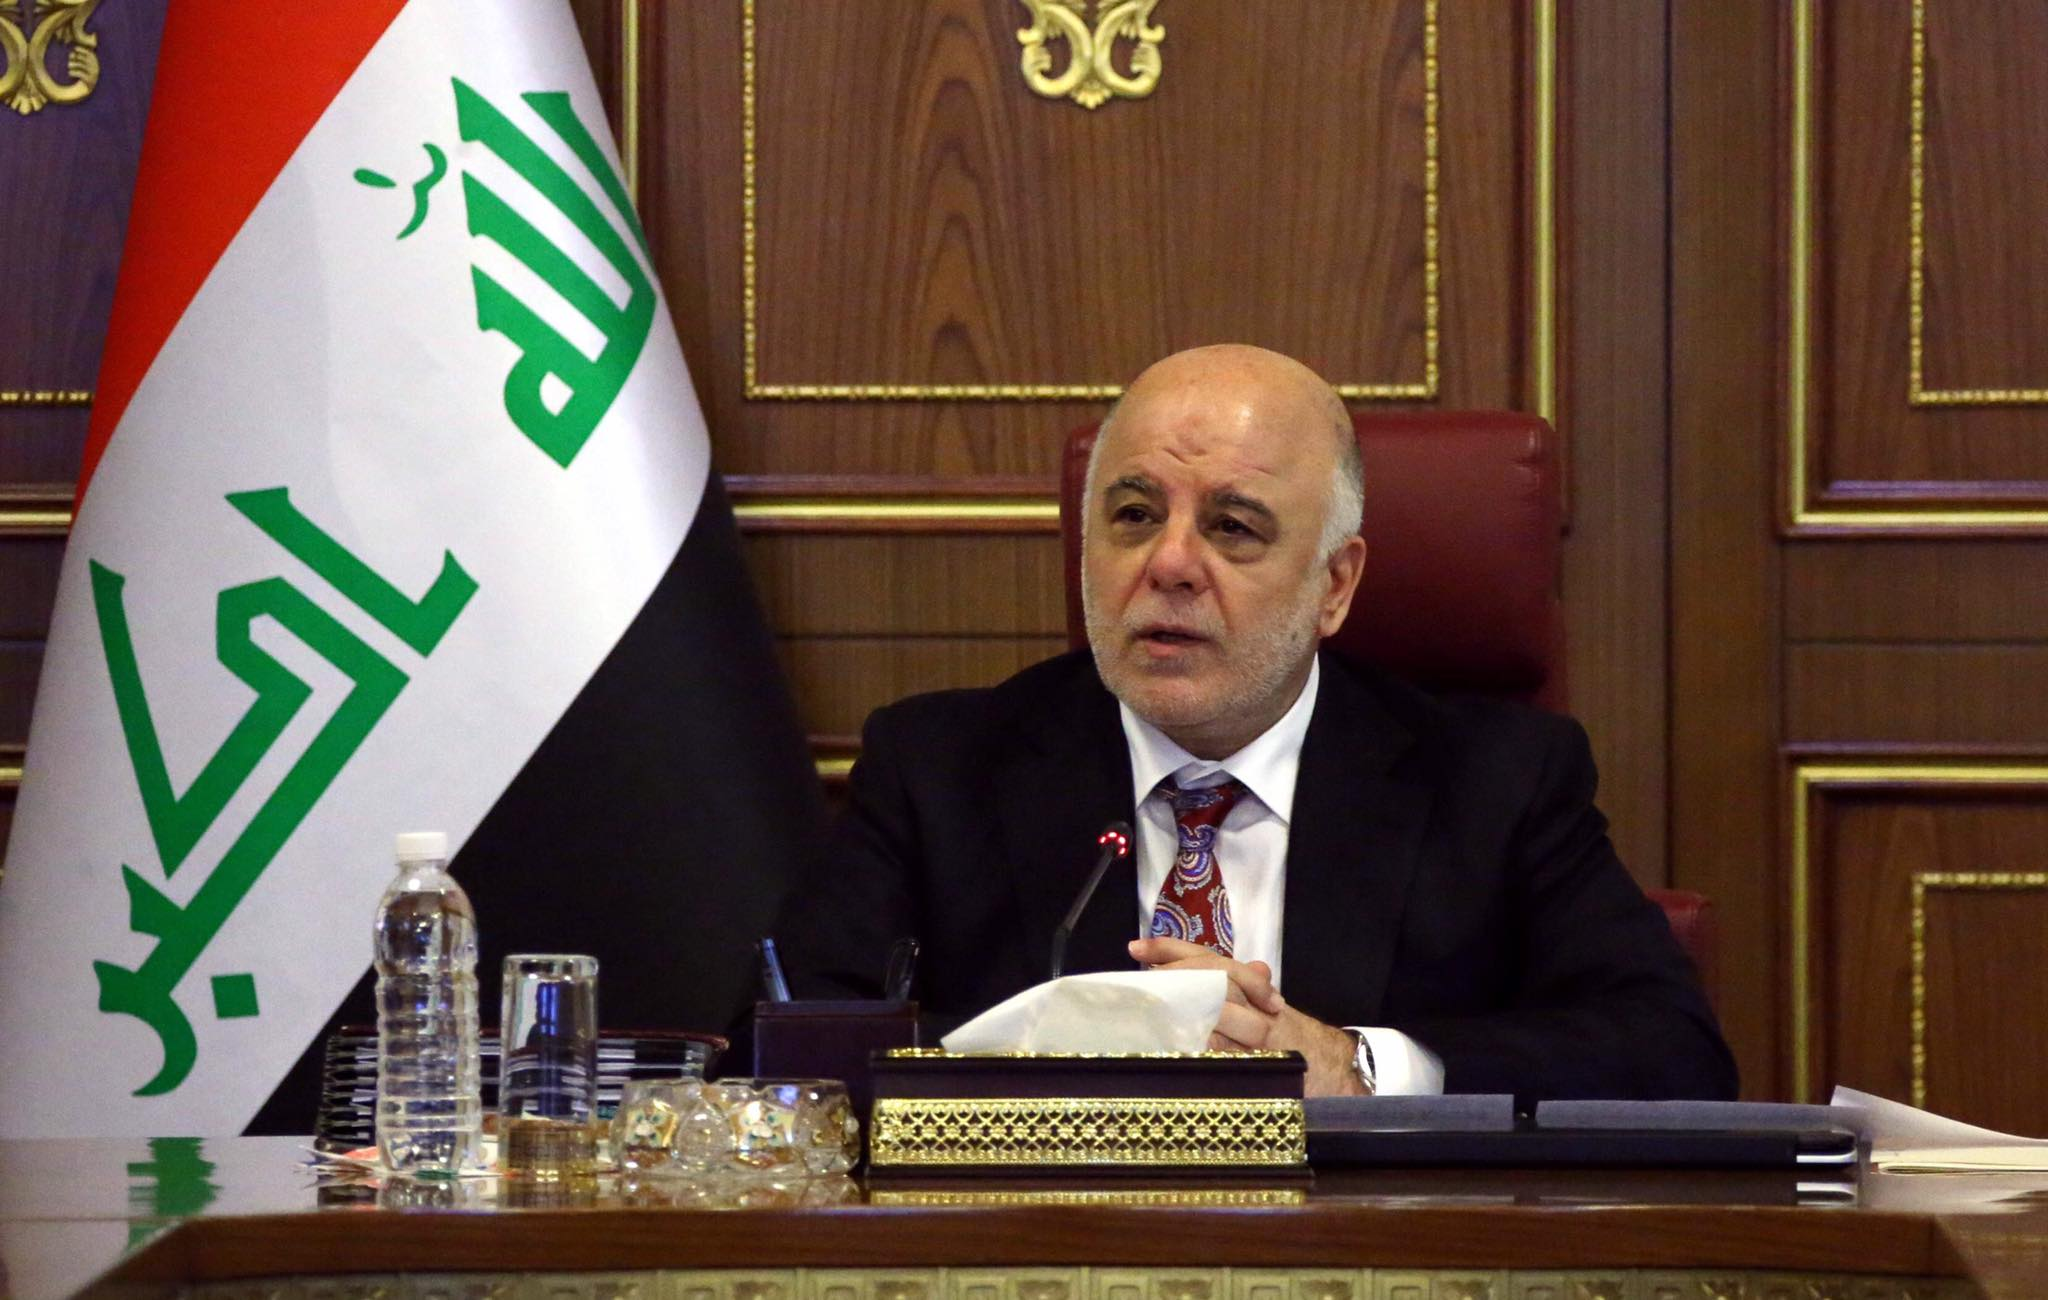 Iraq Prime Minister Haider Al Abadi In Office